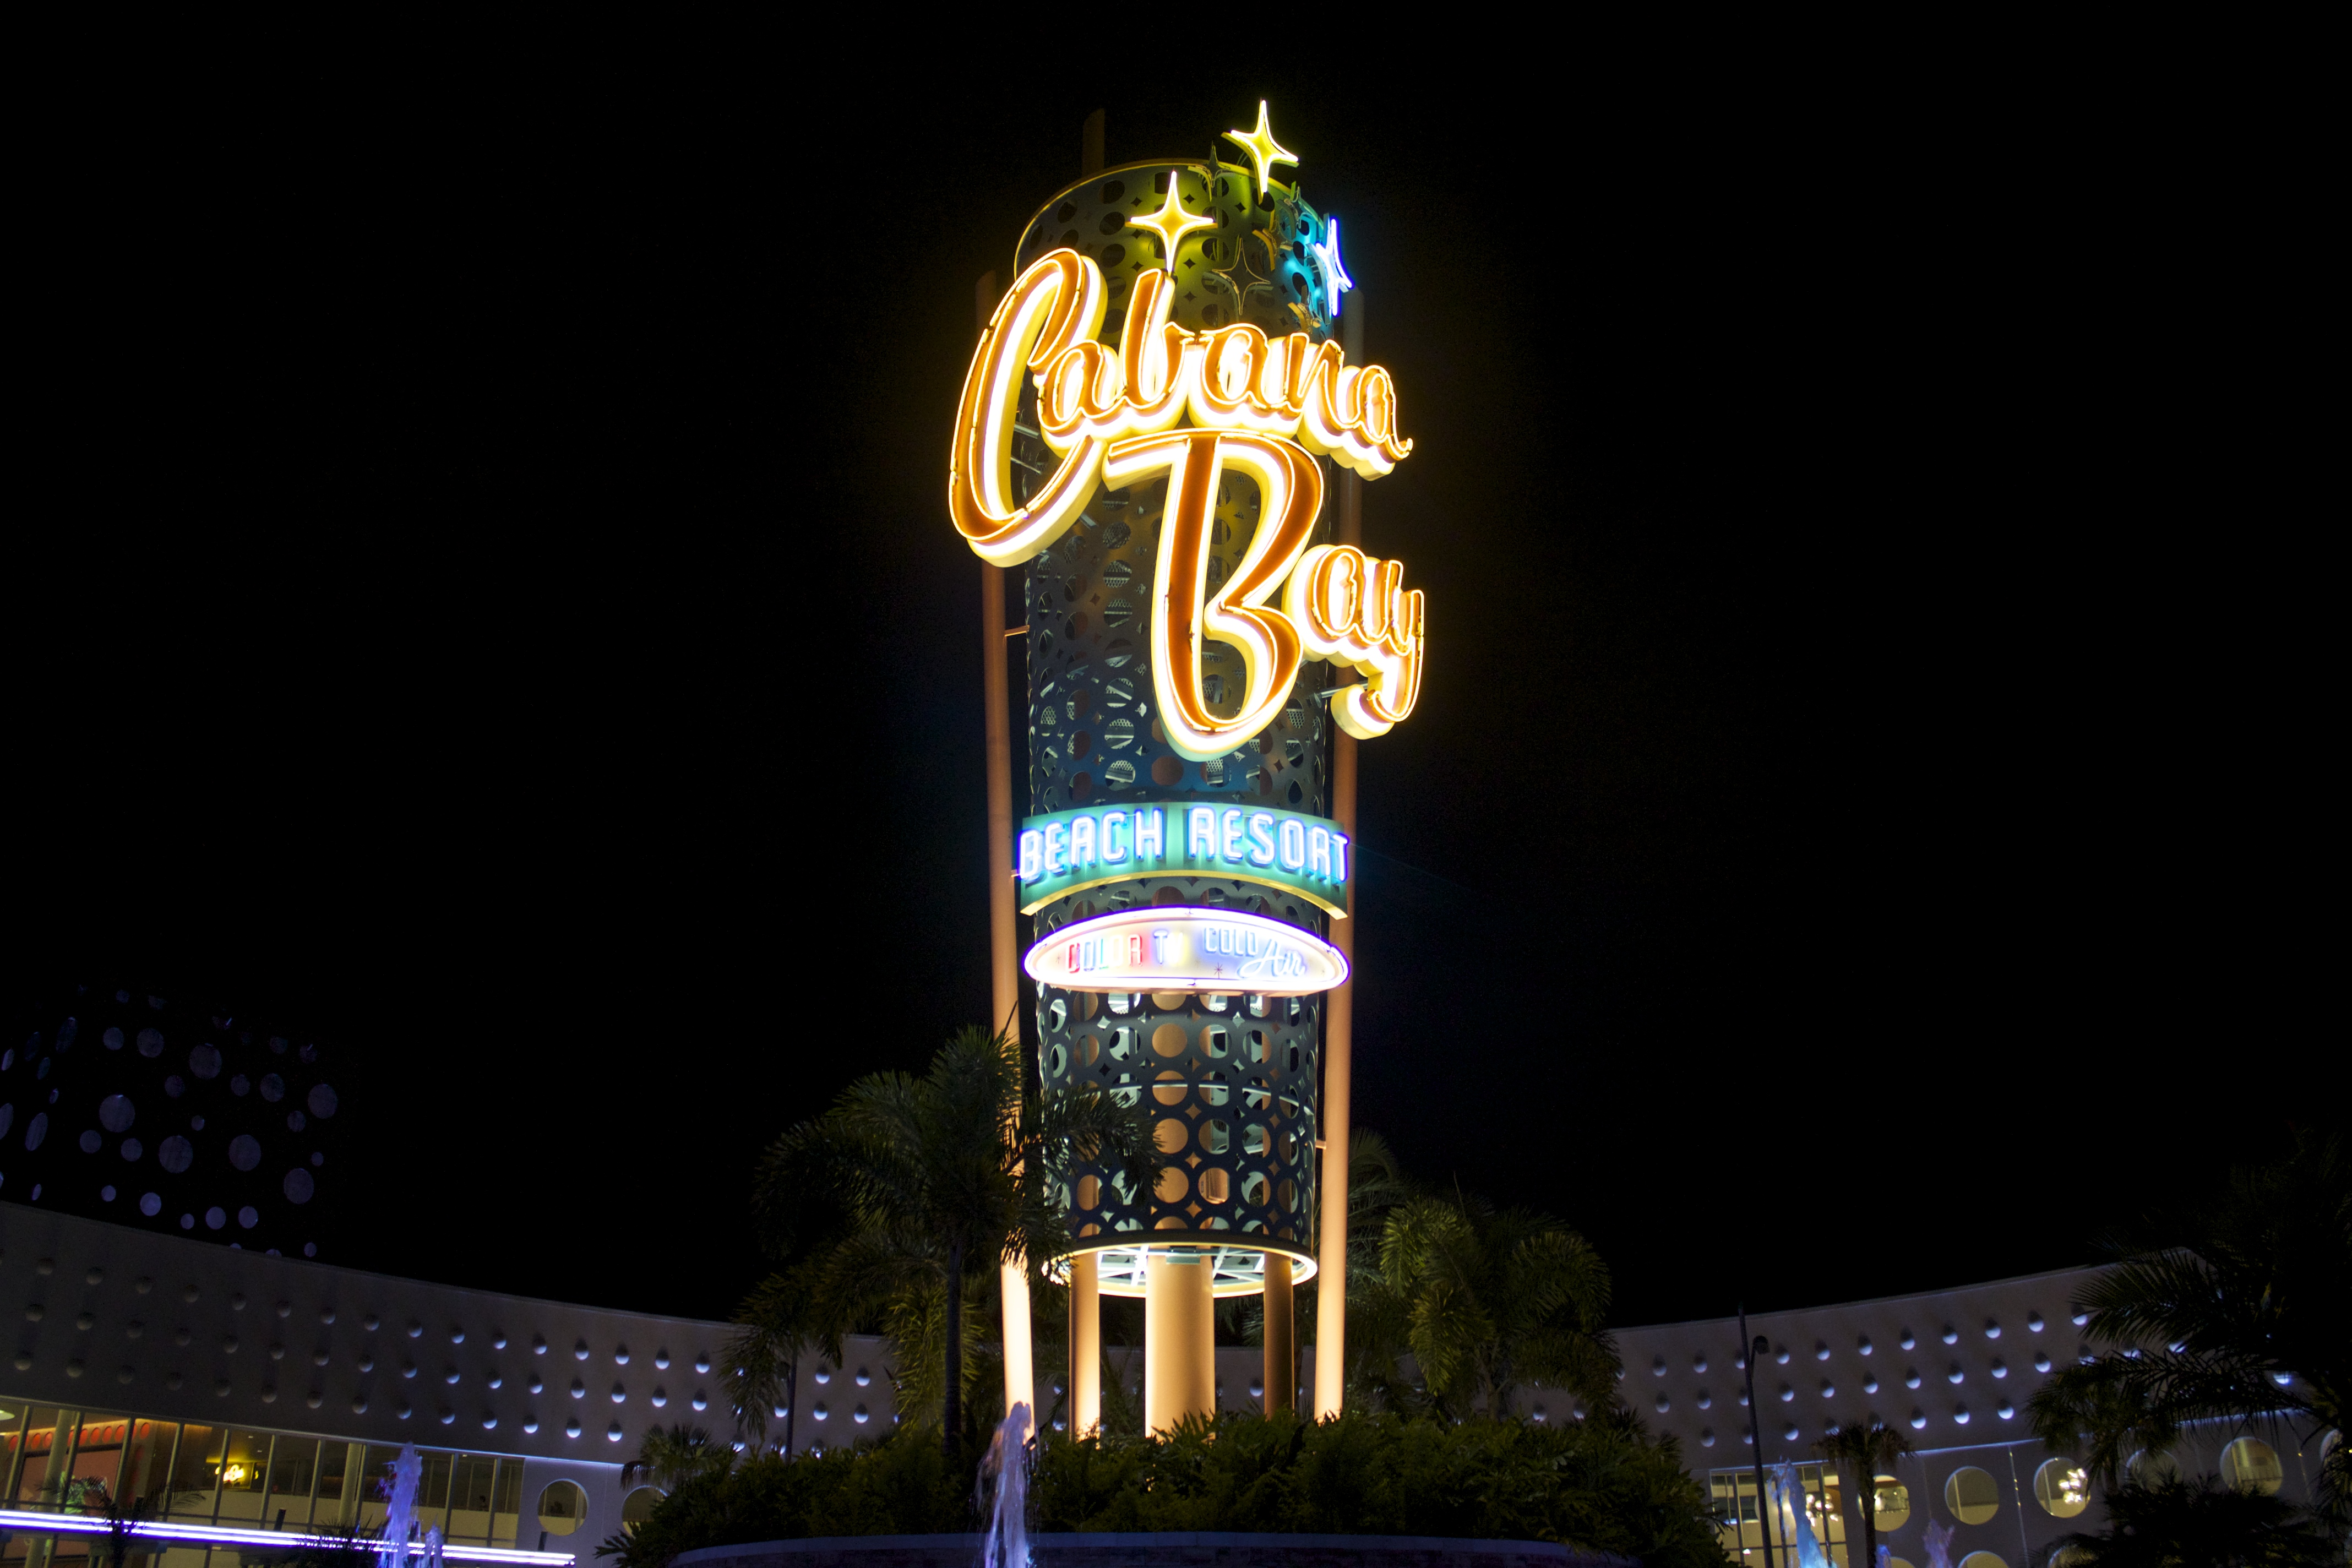 cabana bay beach-entrance